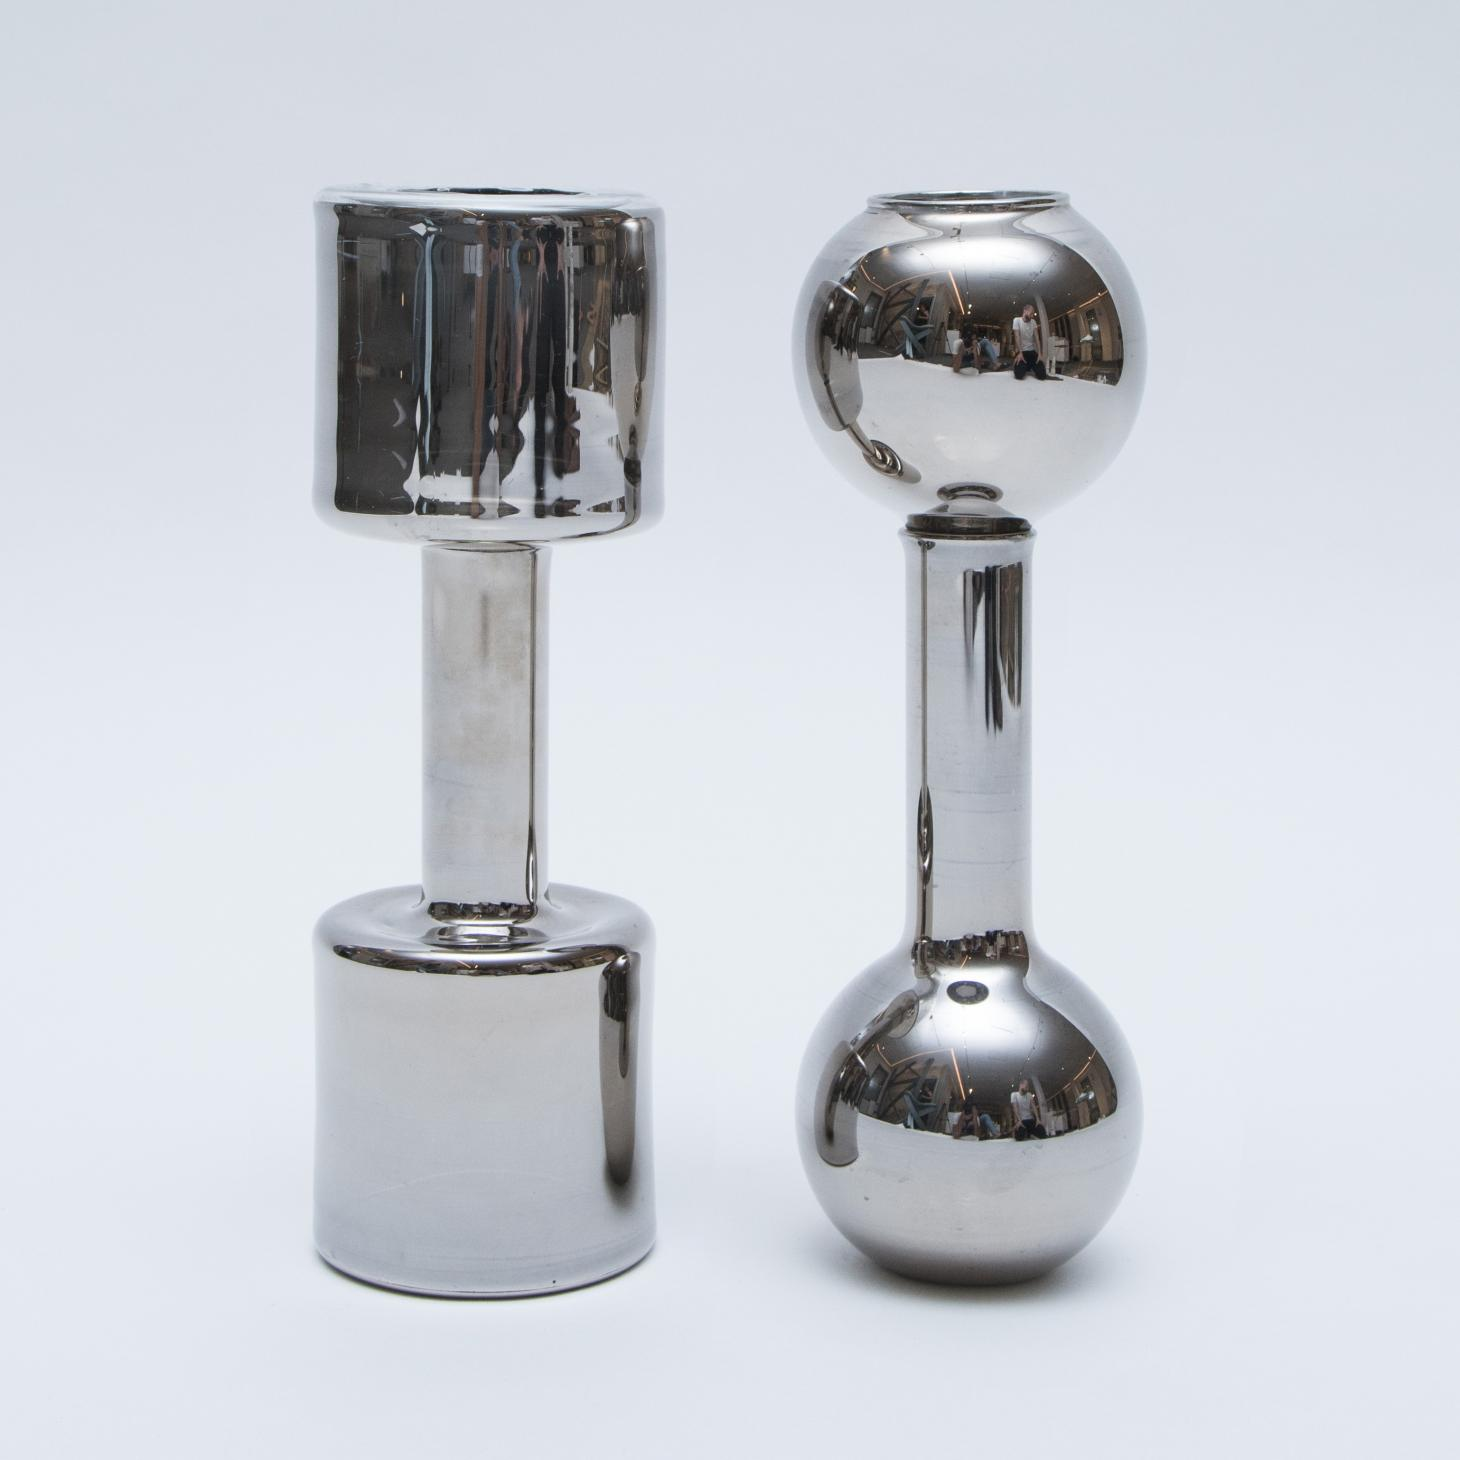 Beirut Power glass candleholders by Wyssem Nochi